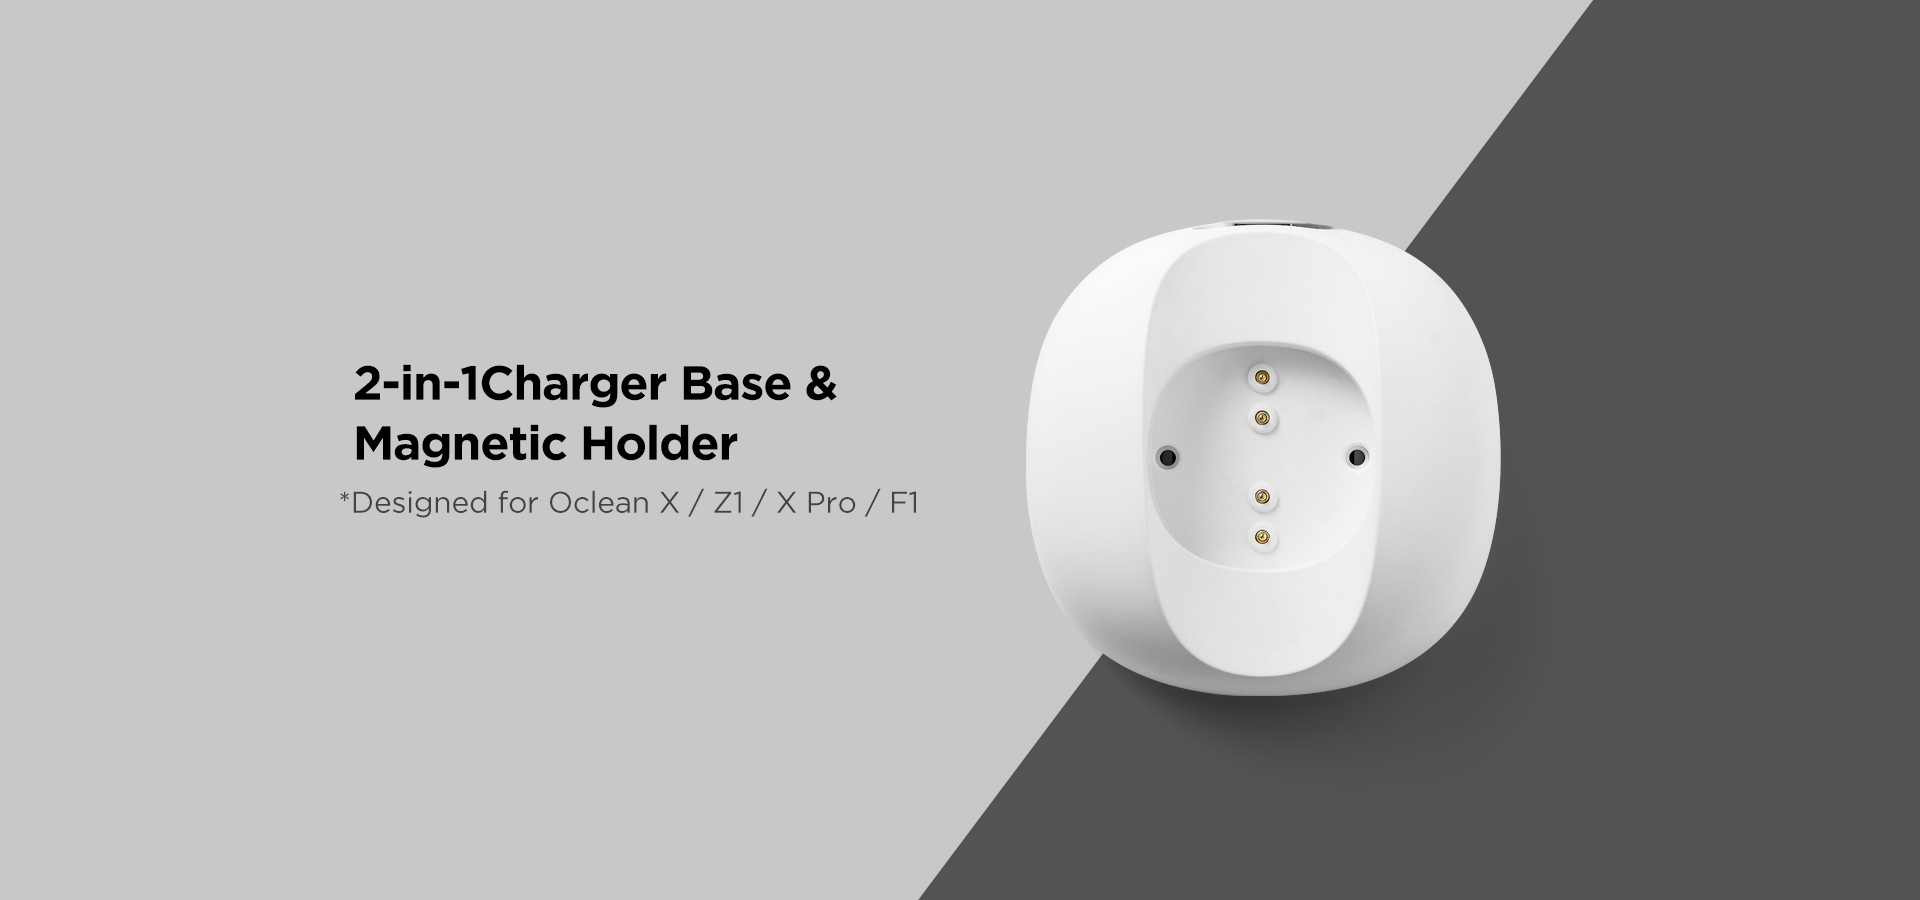 2-in-1 charger base &magnetic holder for oclean X/Z1/X Pro/F1